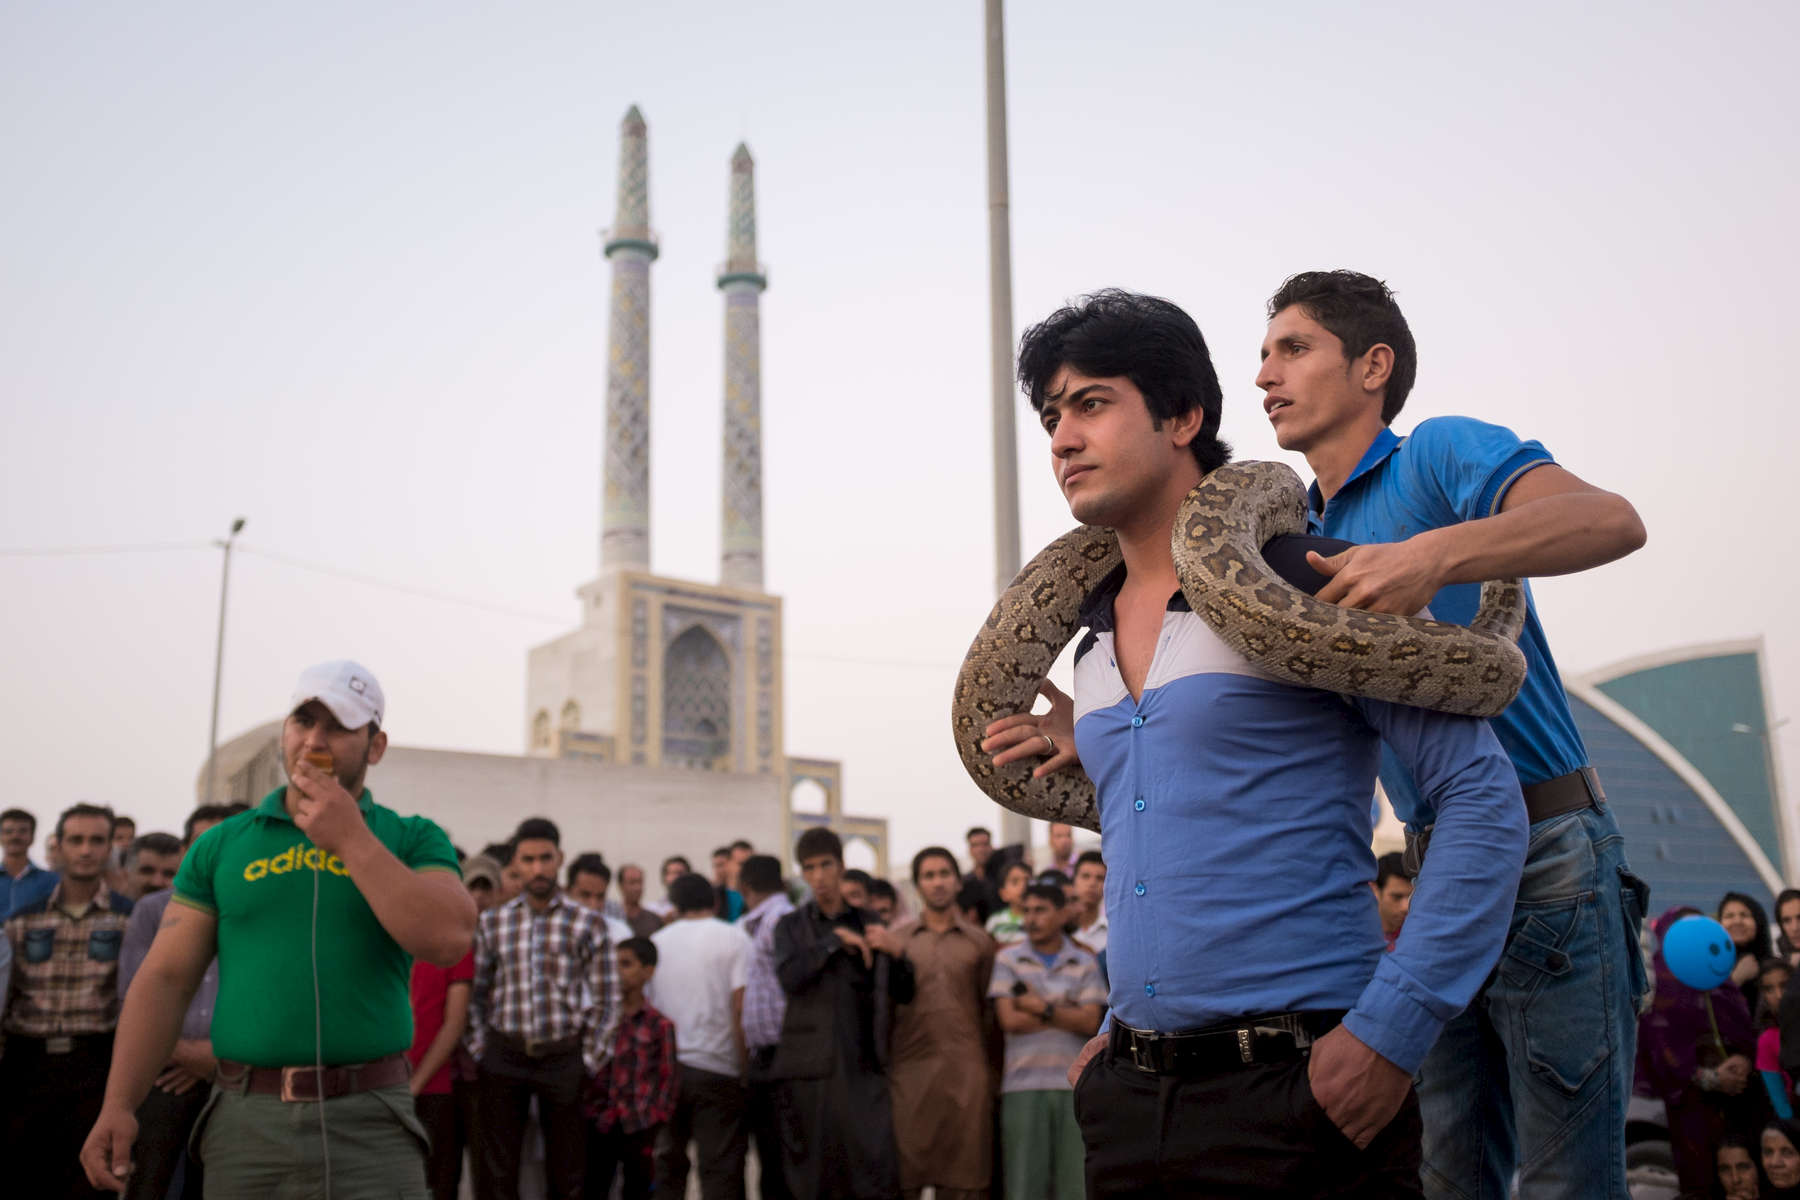 A man looking ill at ease with a large python at a sideshow in Bandar Abbas.  The city is a major smuggling centre; with all manner of goods landing here from Dubai and Oman, just an hour across the Gulf.